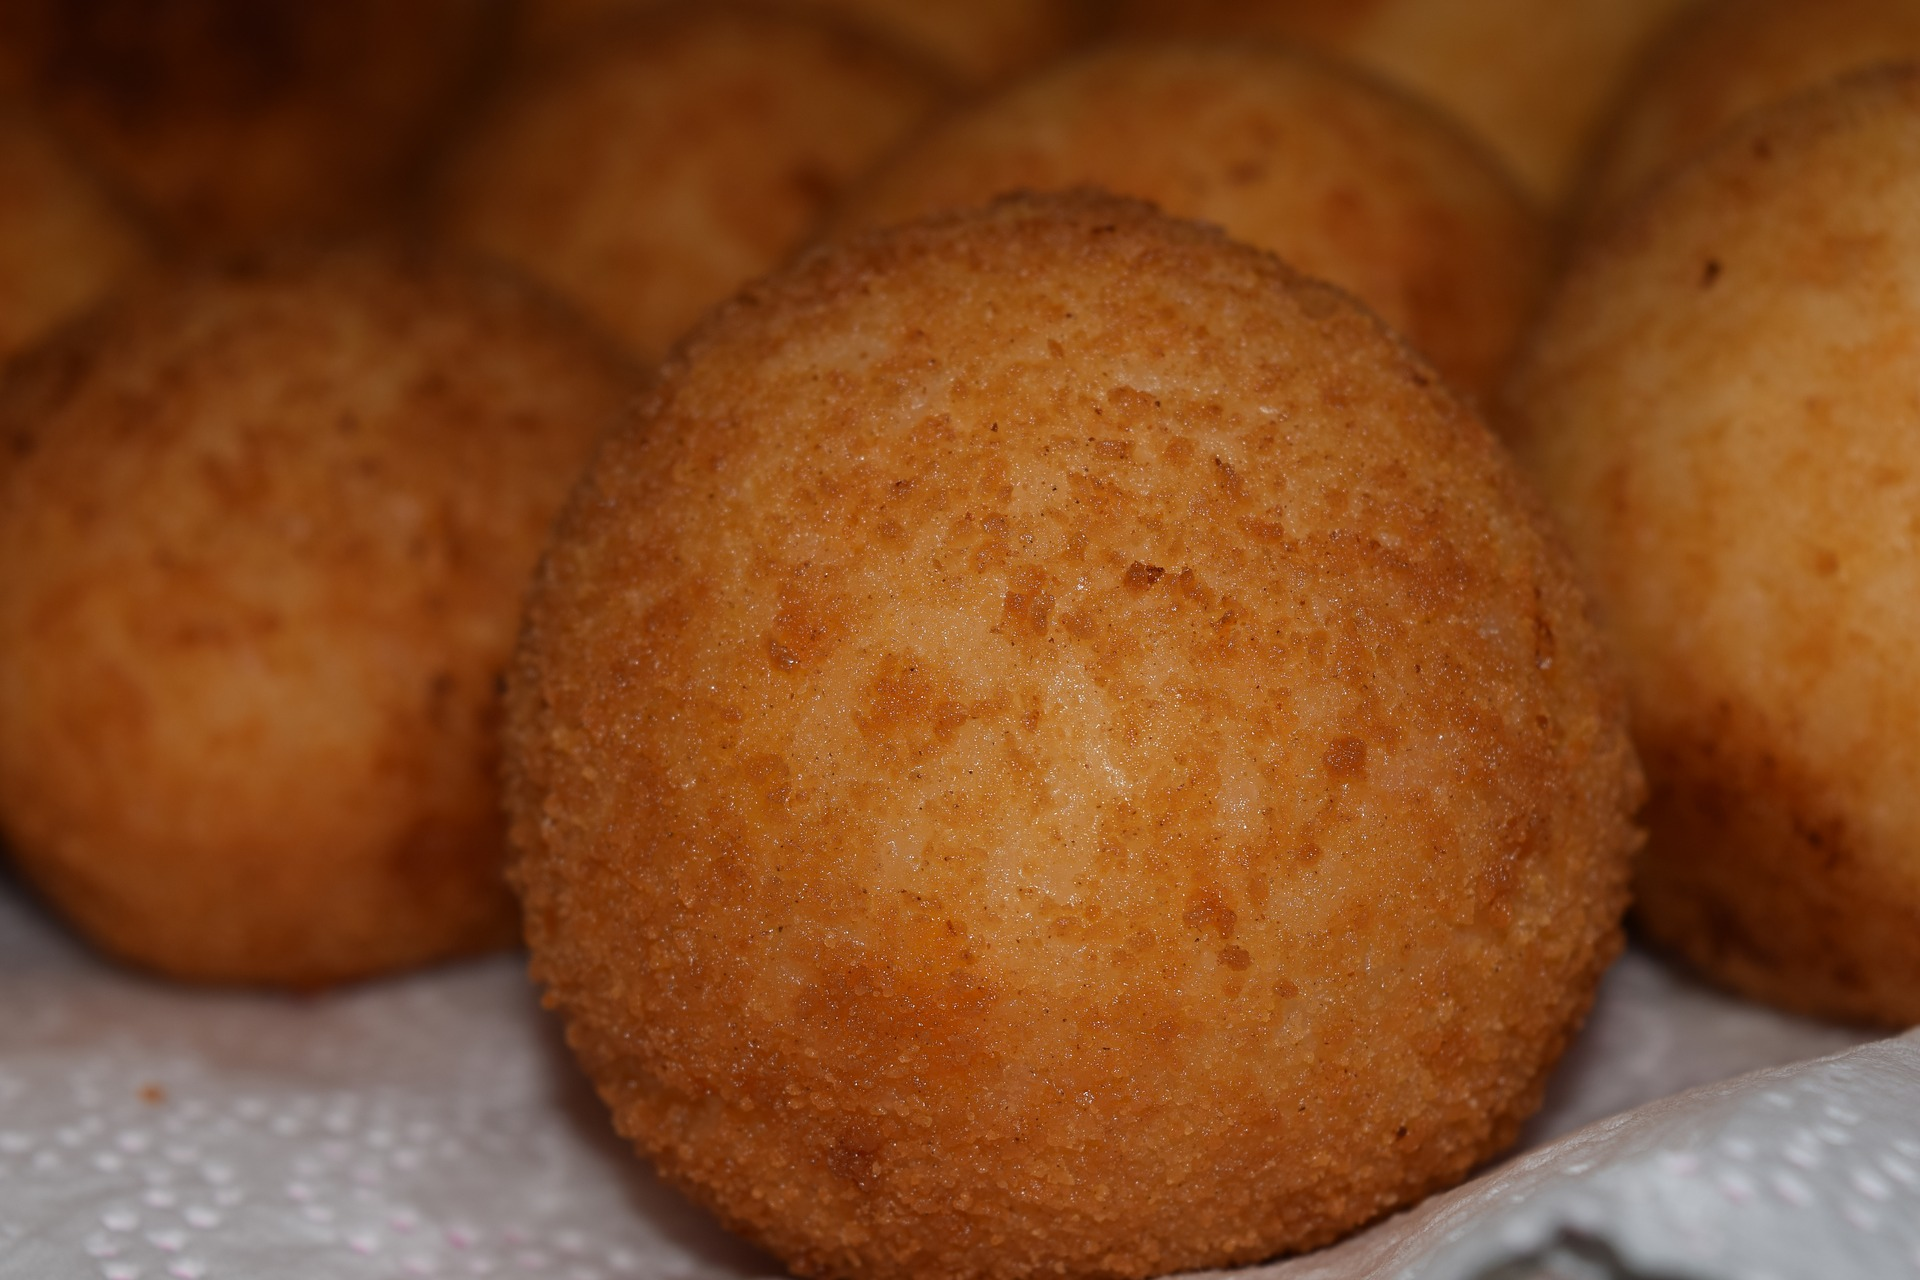 Long-Weekend Class: Making Arancine